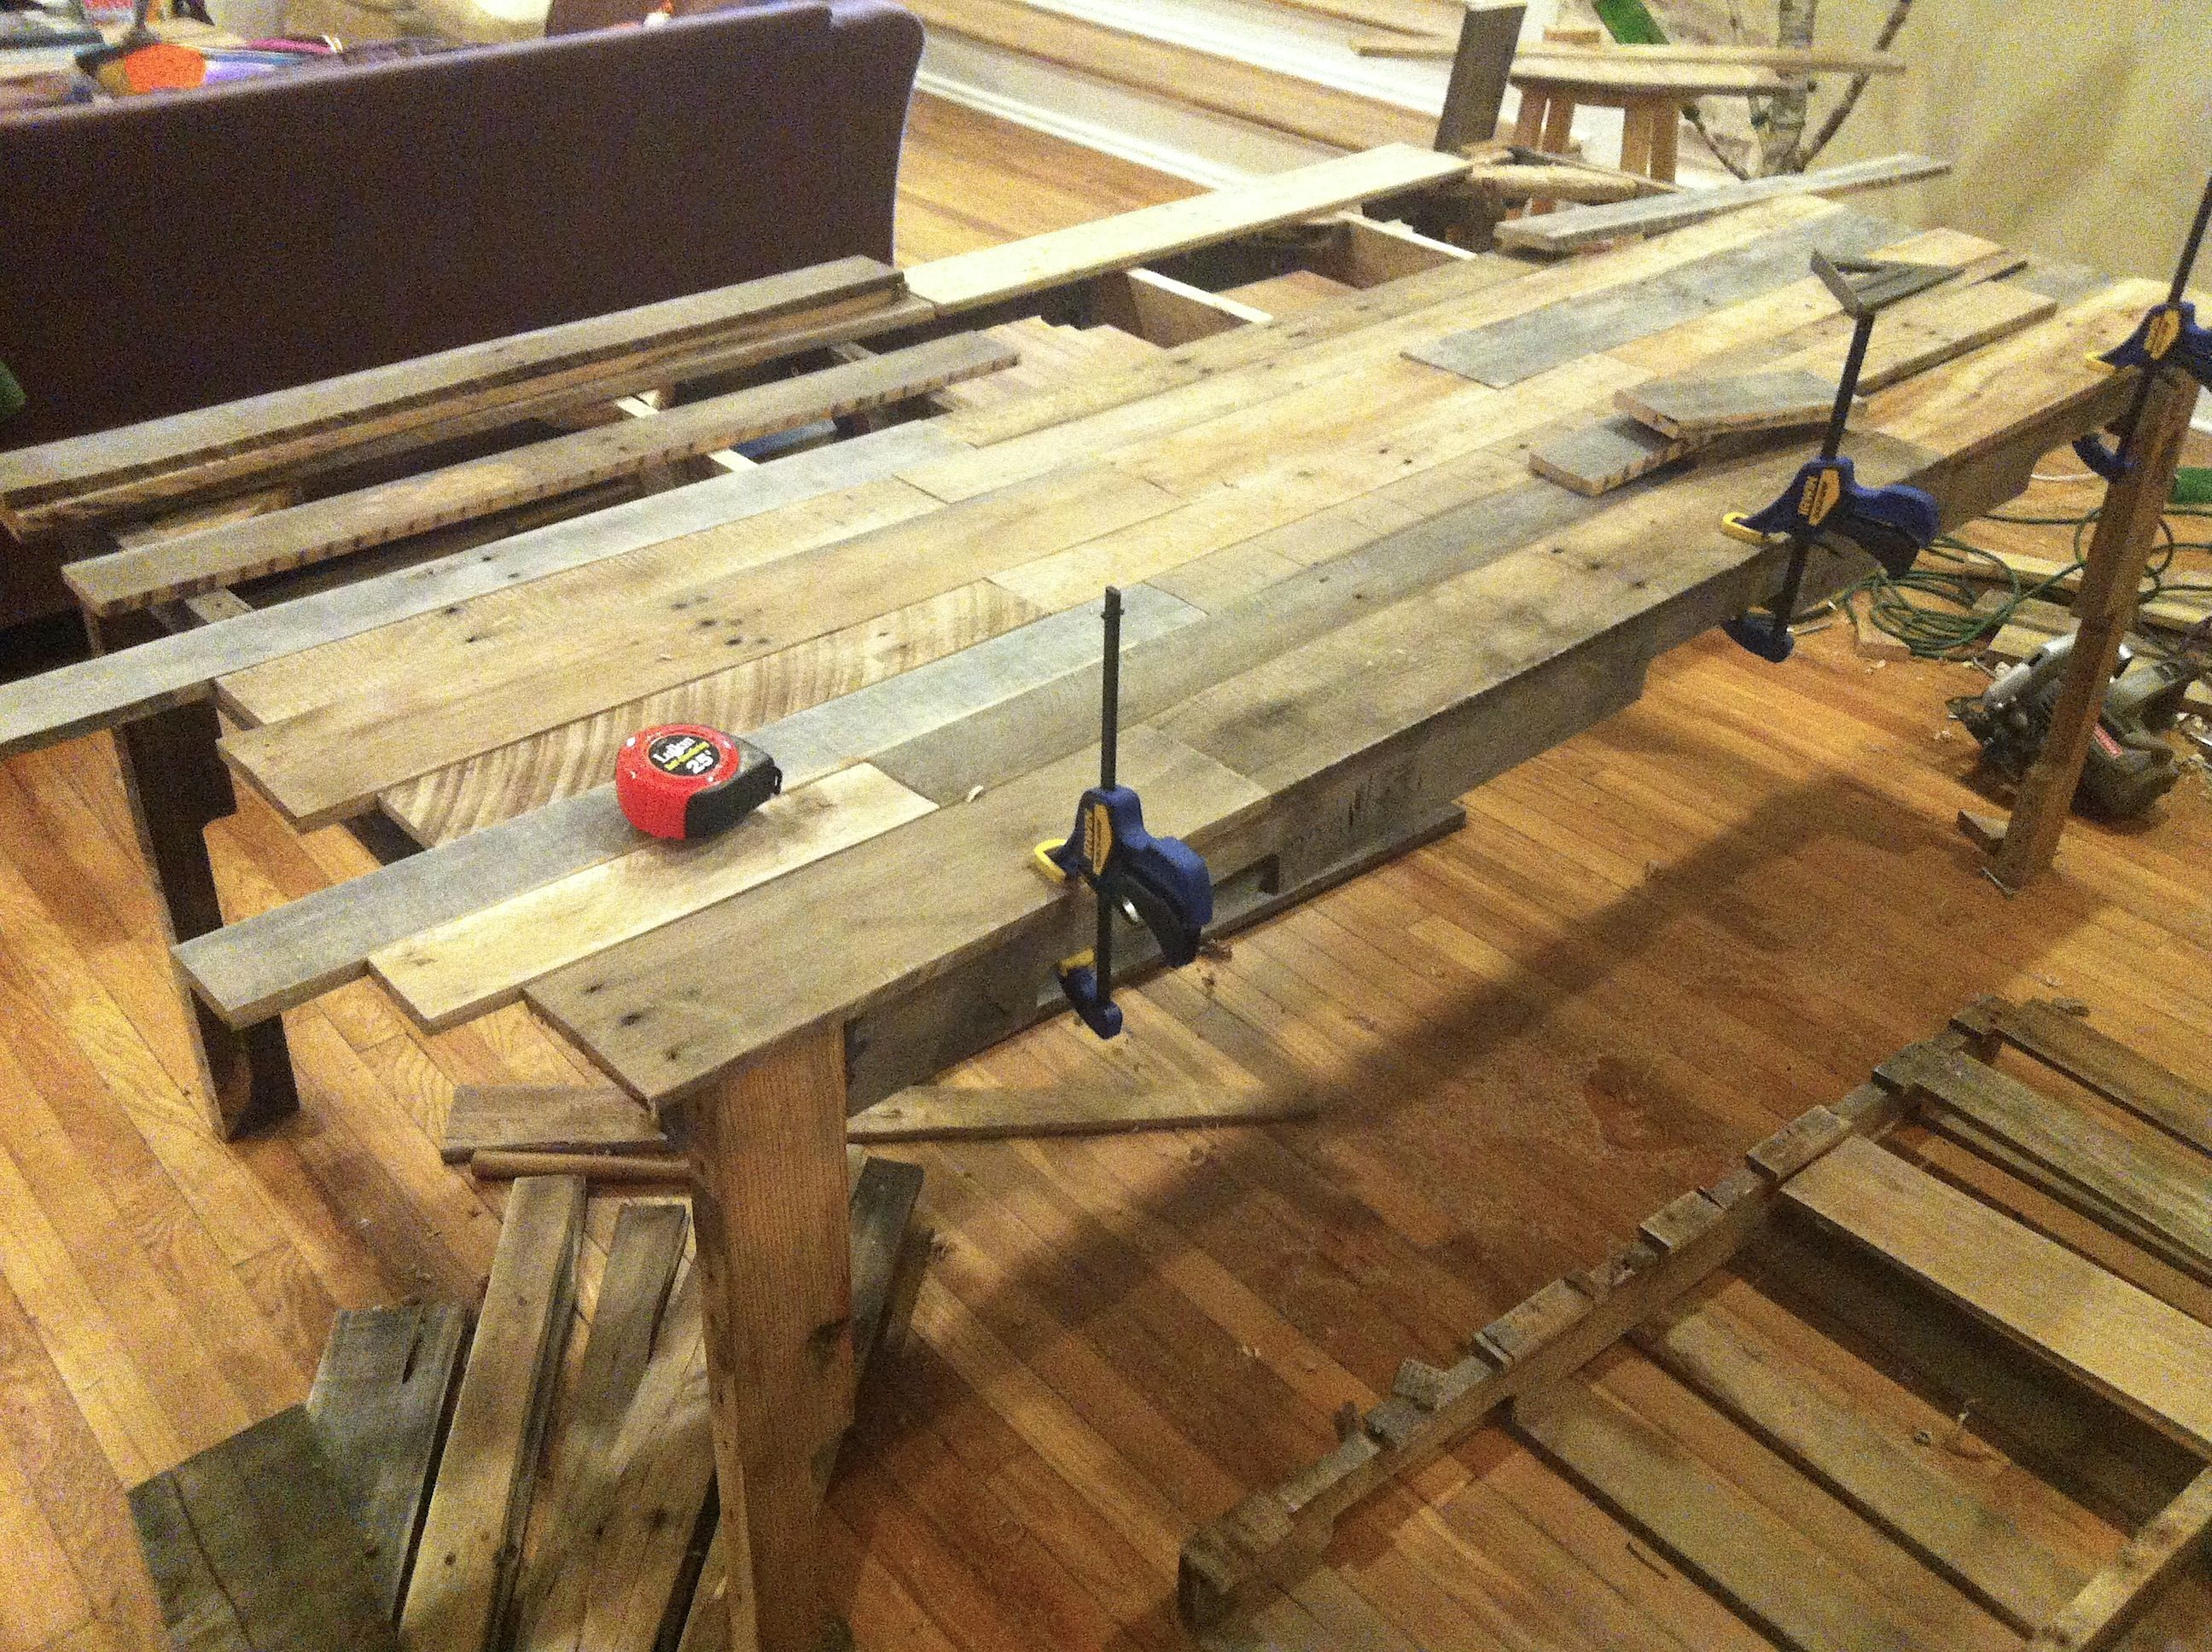 Daniel Made This Dining Table Entirely From Carefully Disassembled Shipping Pallets And Finished It With A